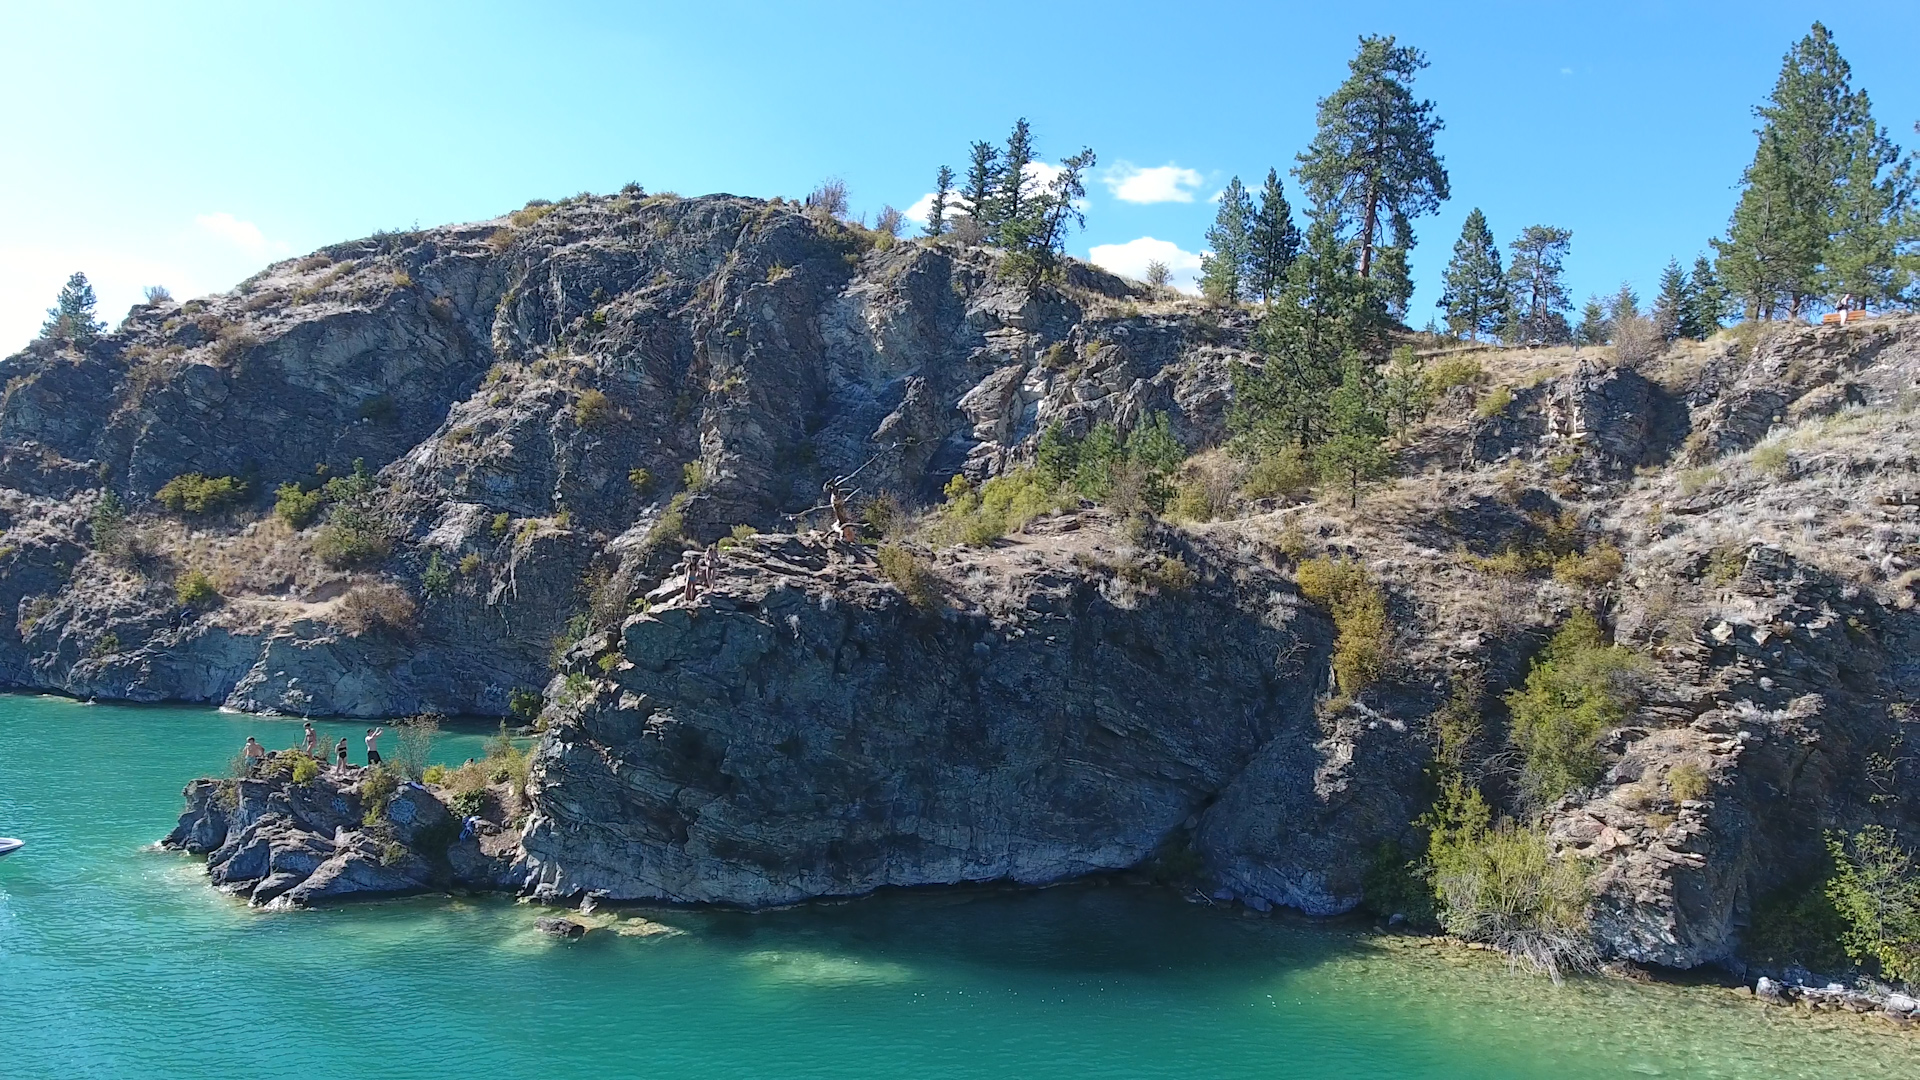 Kalamalka Lake Provincial Park - The Cliffs 3578